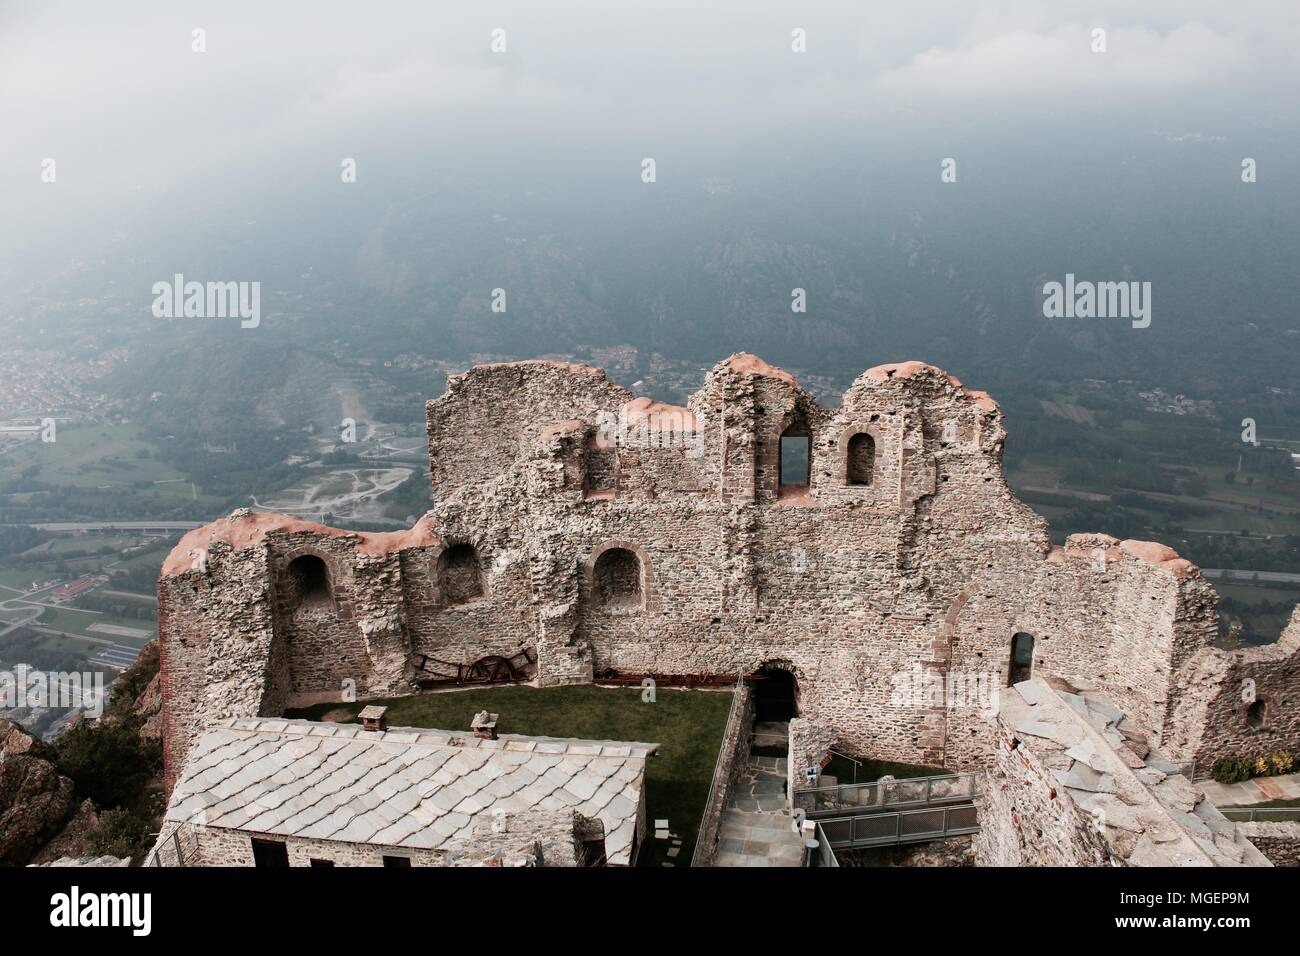 The Abbey of the Sacra di San Michele near